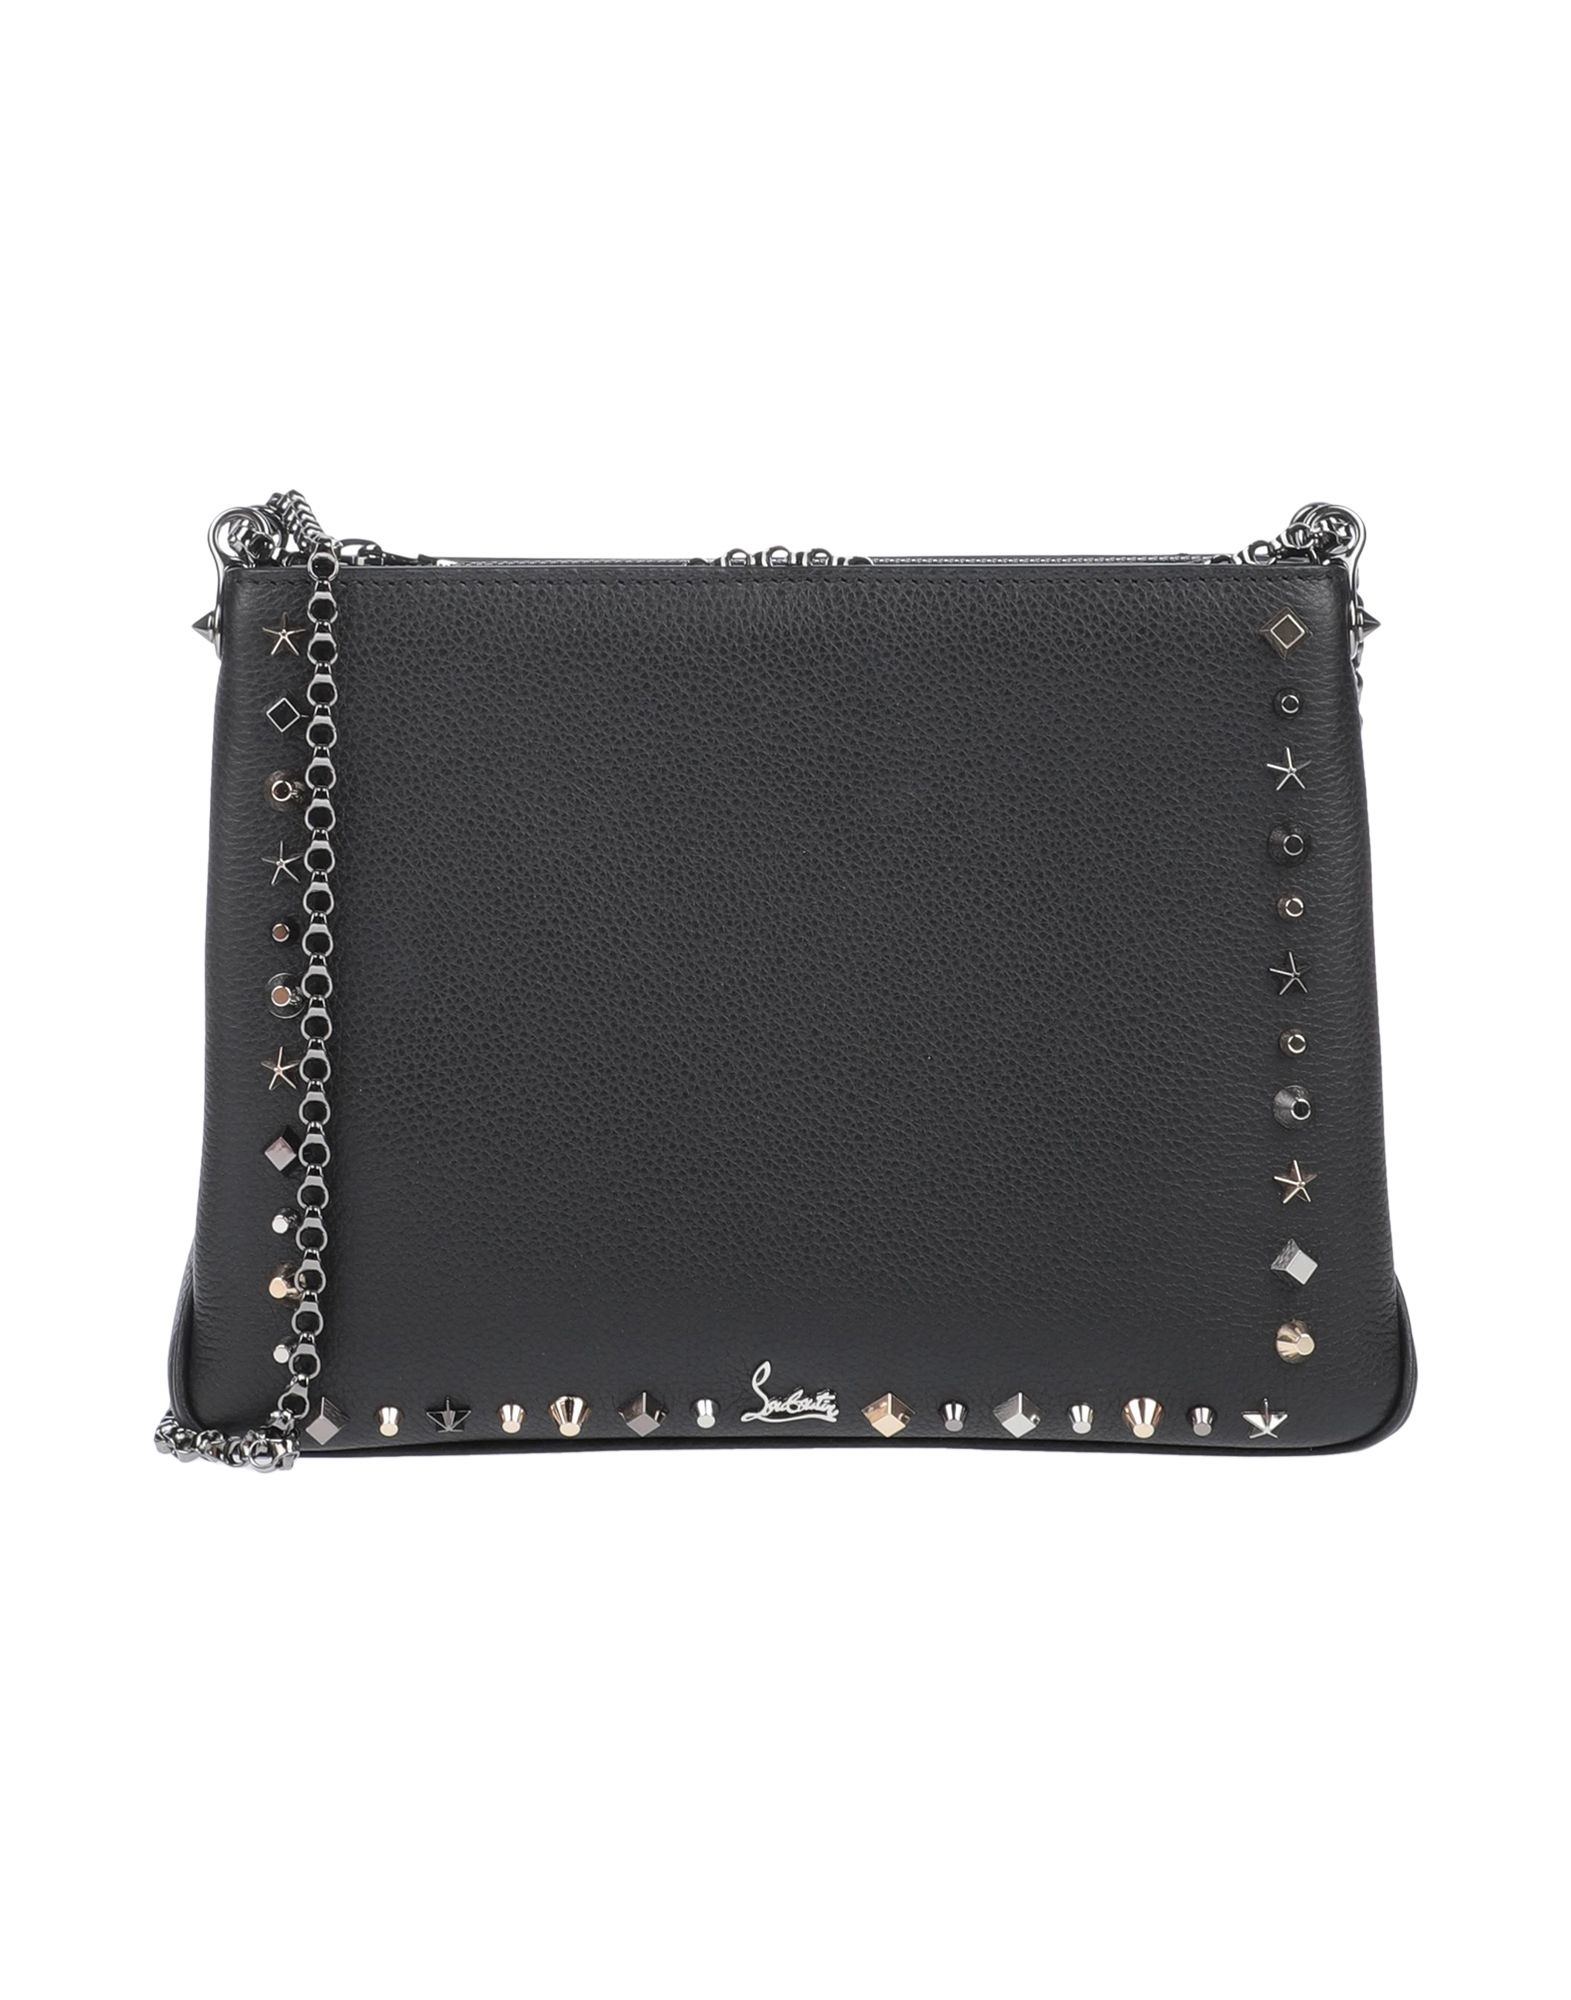 CHRISTIAN LOUBOUTIN Handbags. mini, textured leather, logo, studs, solid color, zipper closure, internal pockets, metallic straps, leather lining, contains non-textile parts of animal origin. Calfskin